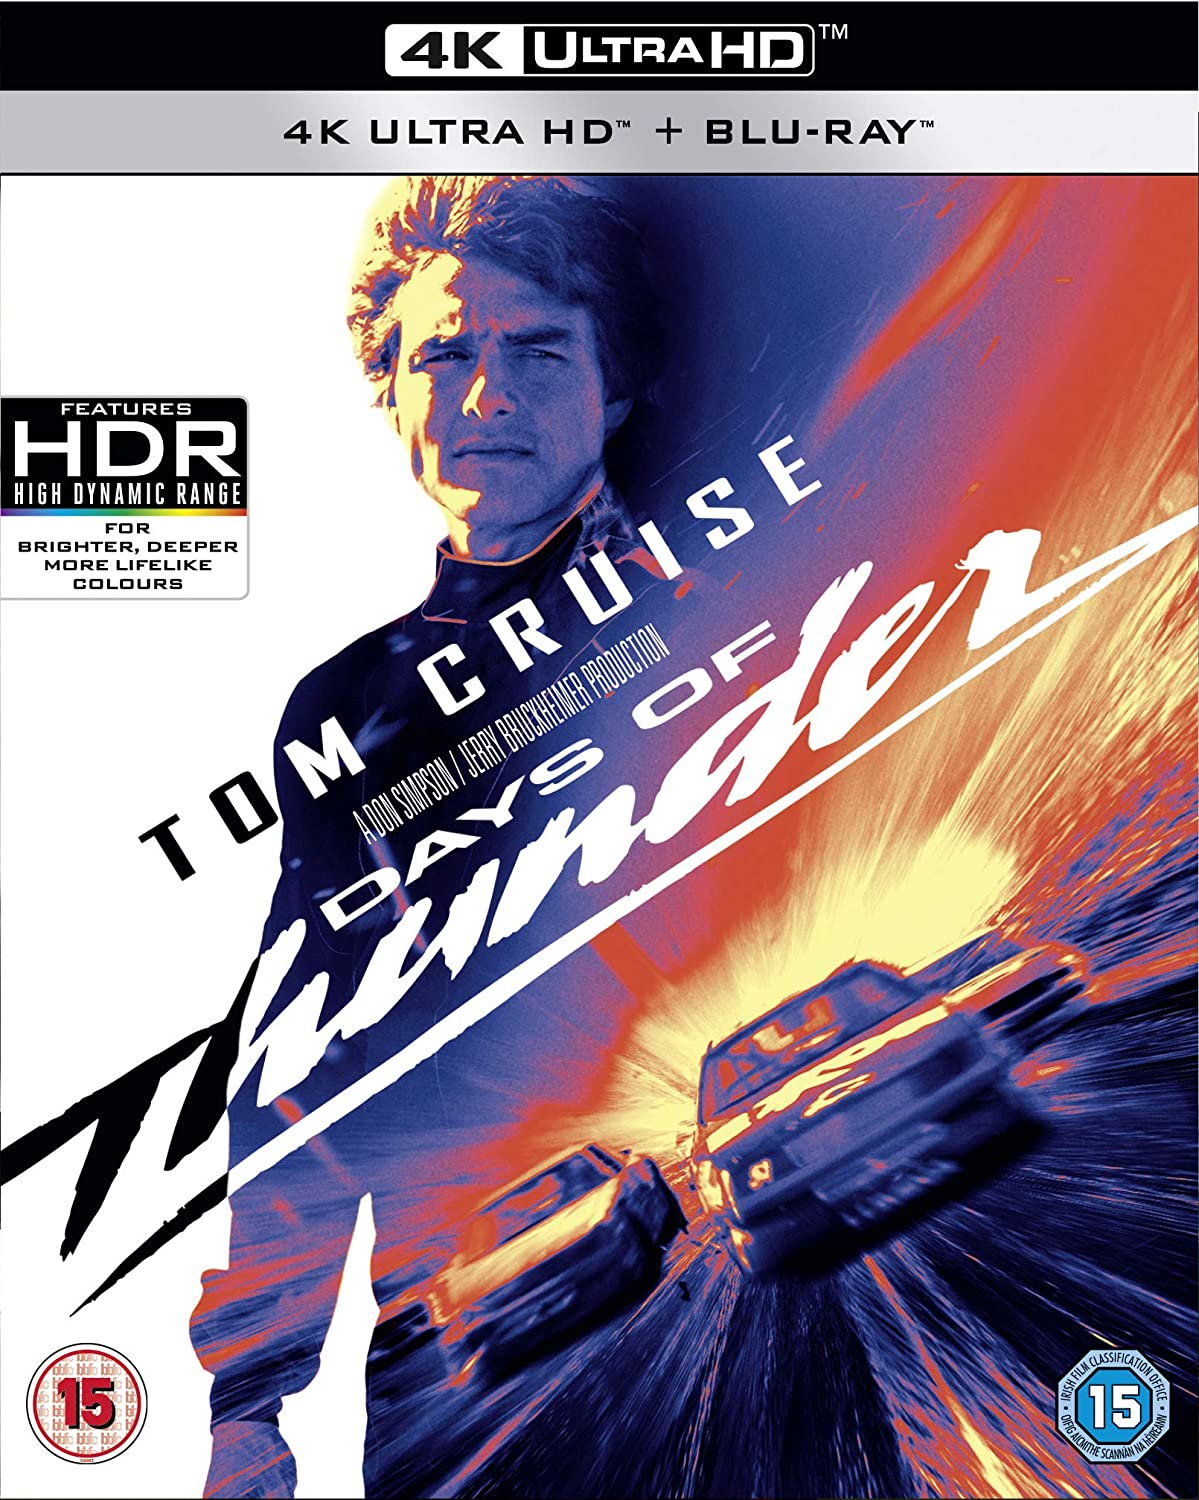 Bourlive dny / Days of Thunder 1990 2160p REMUX HEVC 10bit HDR DV Cz Eng True HD-Angels = CSFD 63%